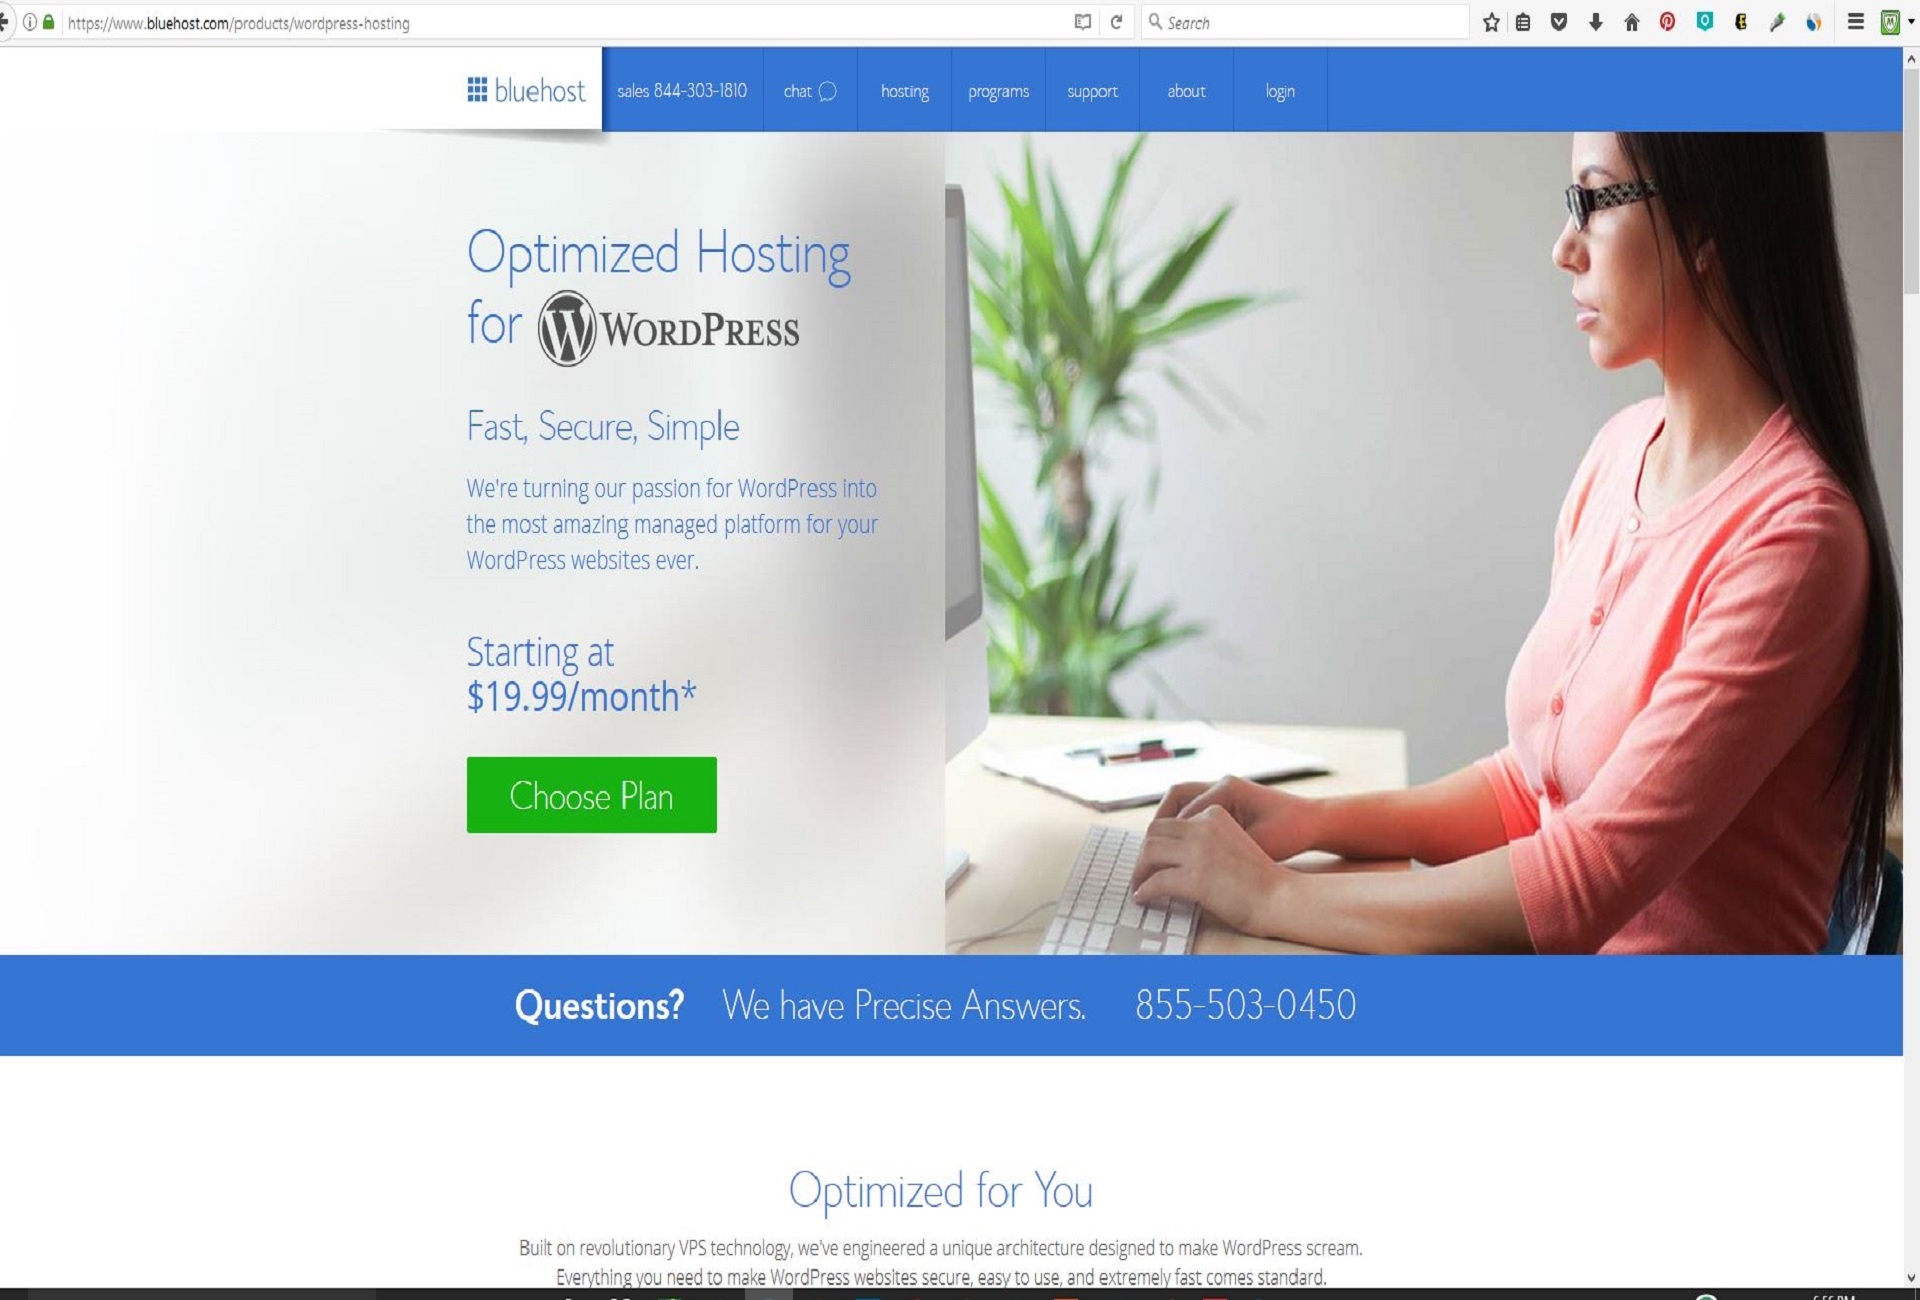 cheap wordpress hosting - secure, reliable, cheap wordpress hosting from bluehost